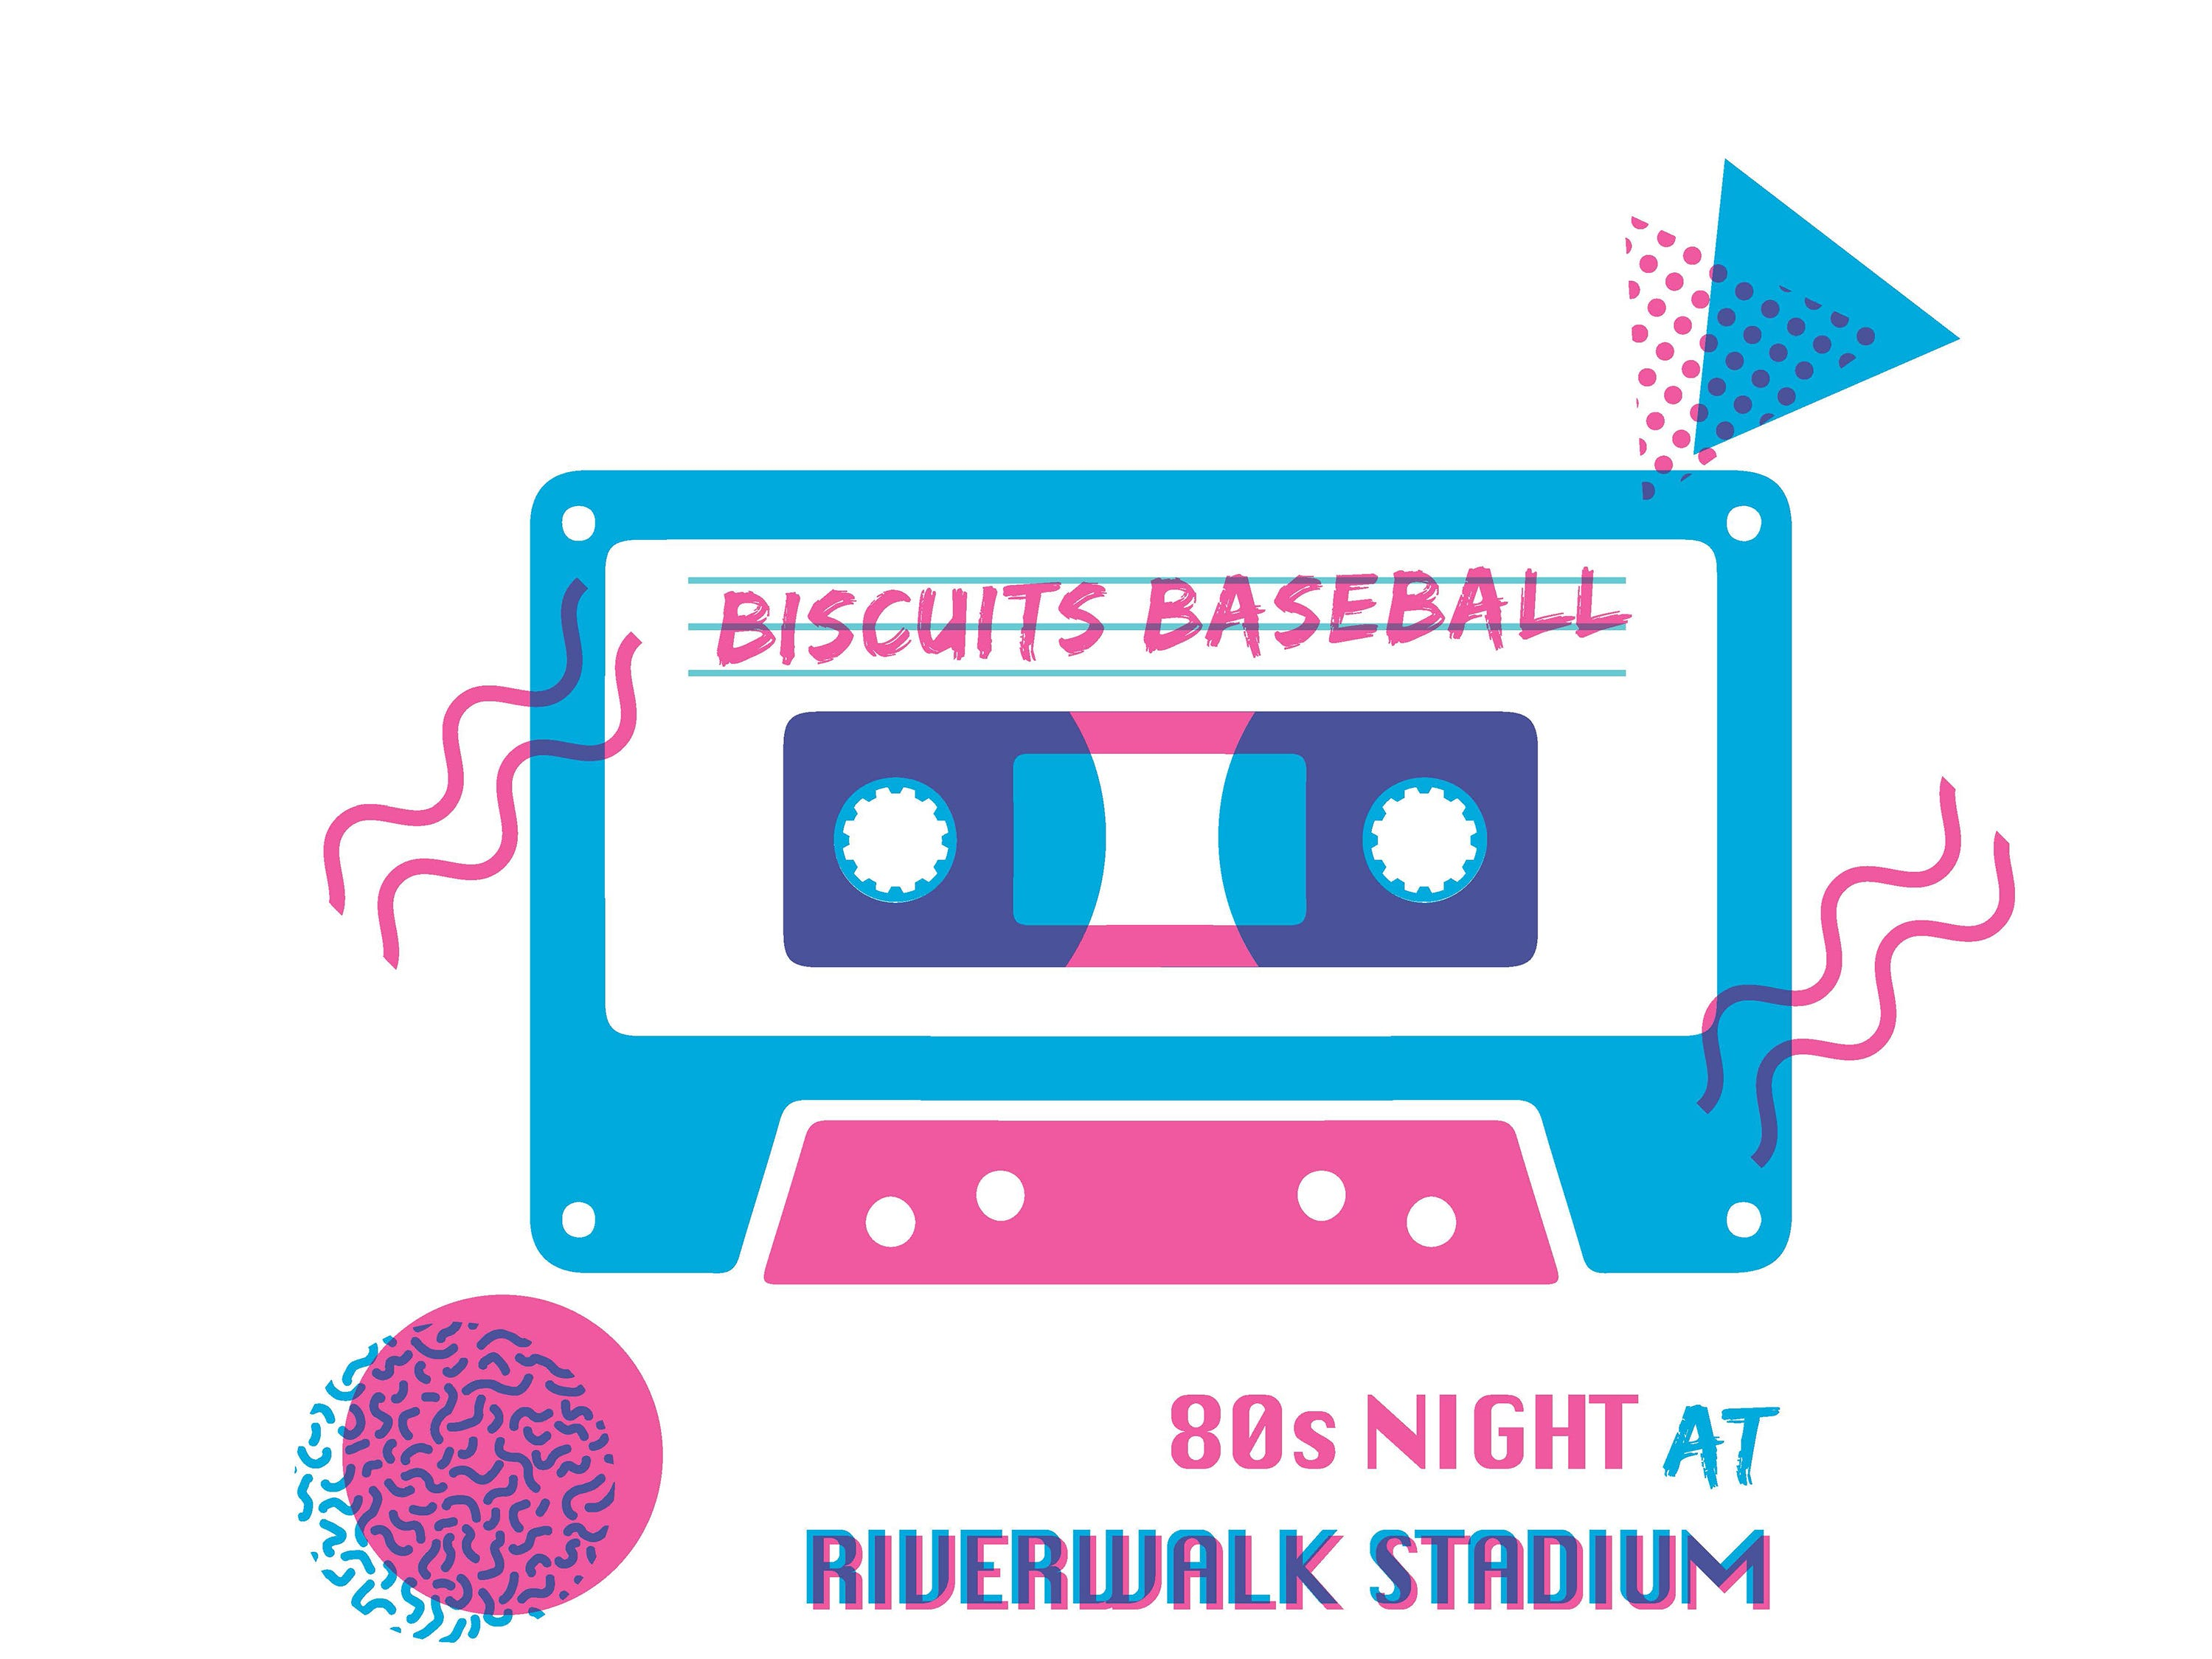 Montgomery Biscuits free t-shirt giveaway design for 80s Night on Thursday, June 6, 2019.